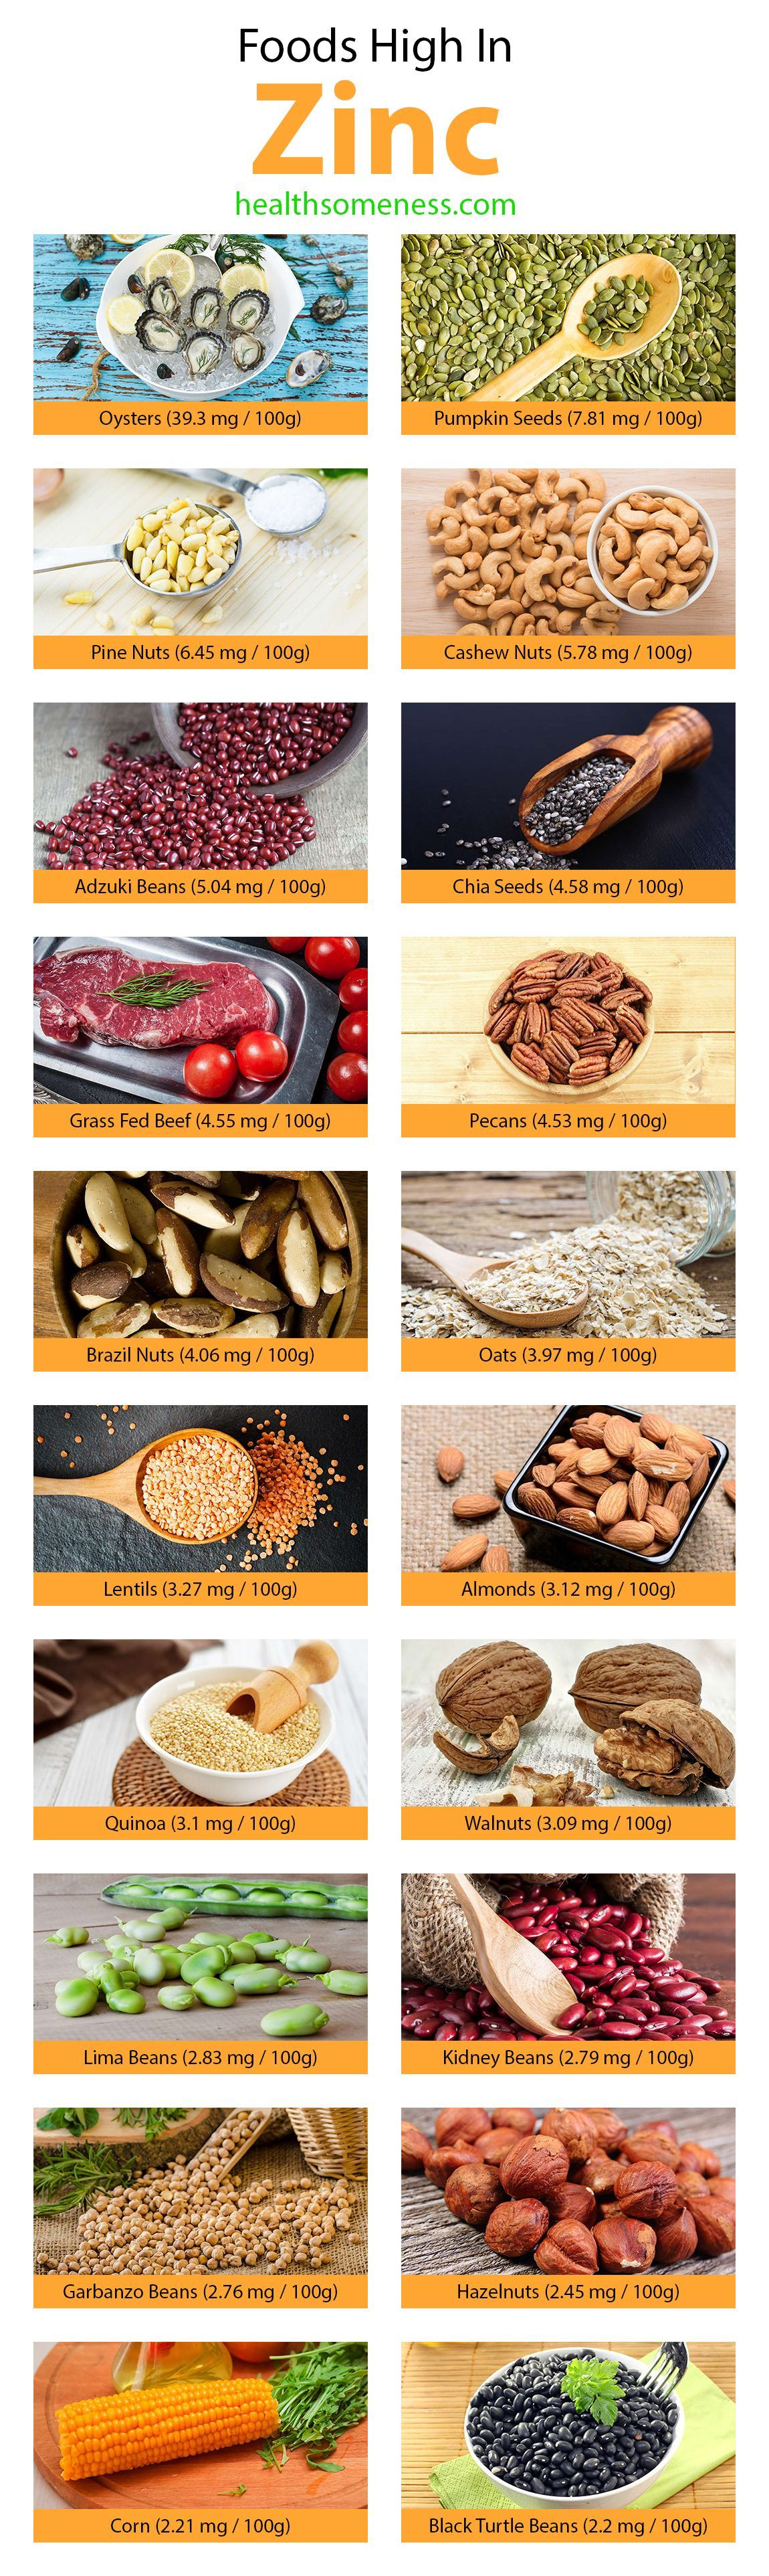 36 Foods High In Zinc The top 20 foods highest in Zinc